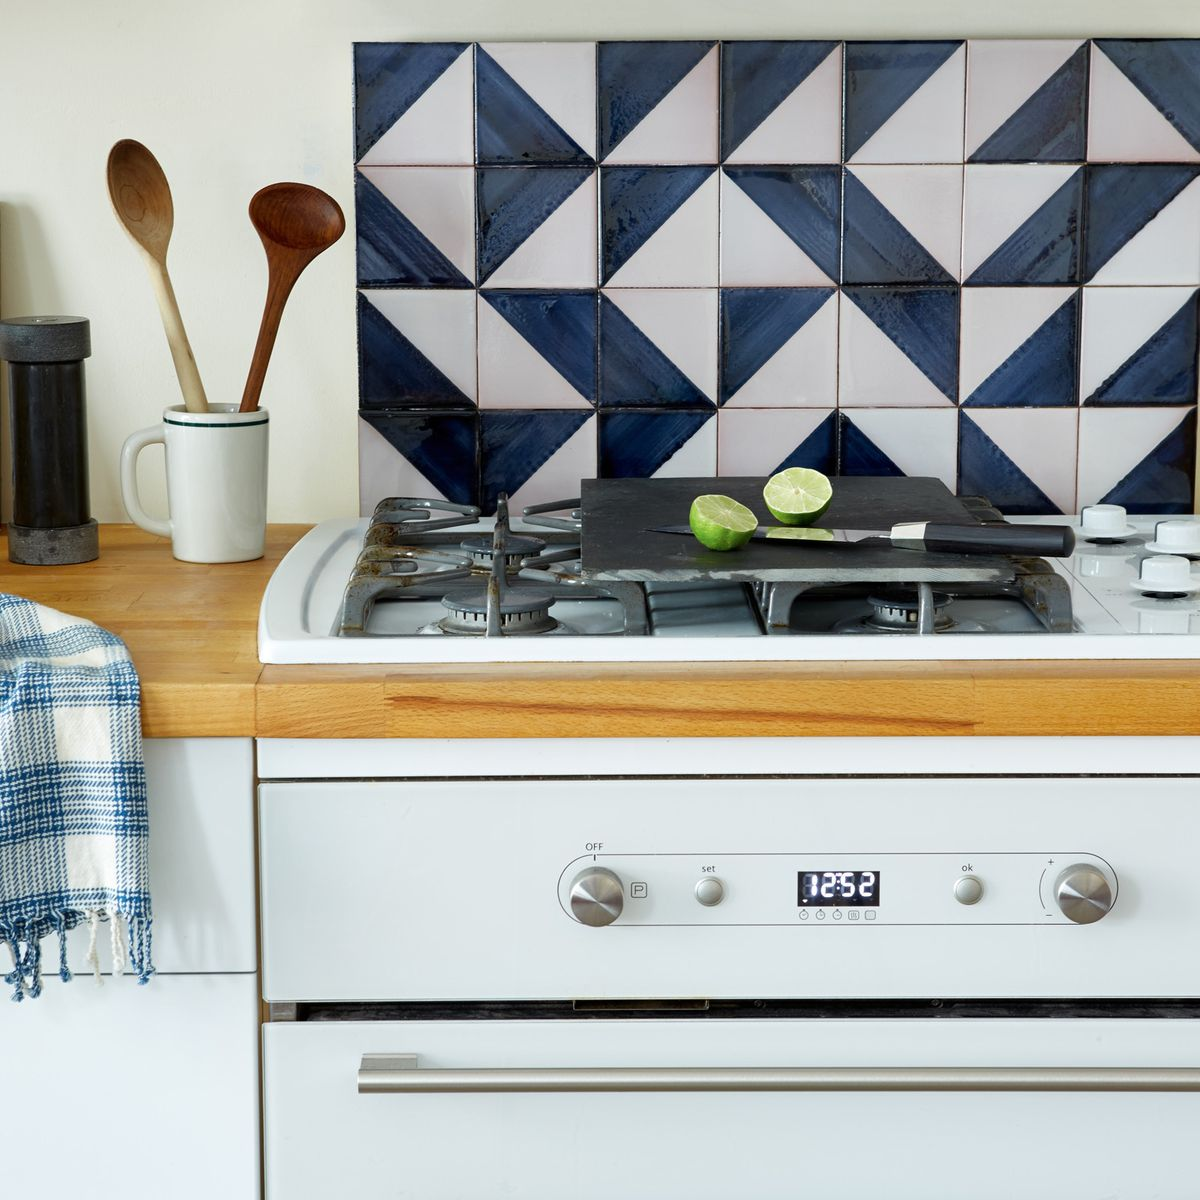 A High Impact But Removable Diy Tile Backsplash To Give